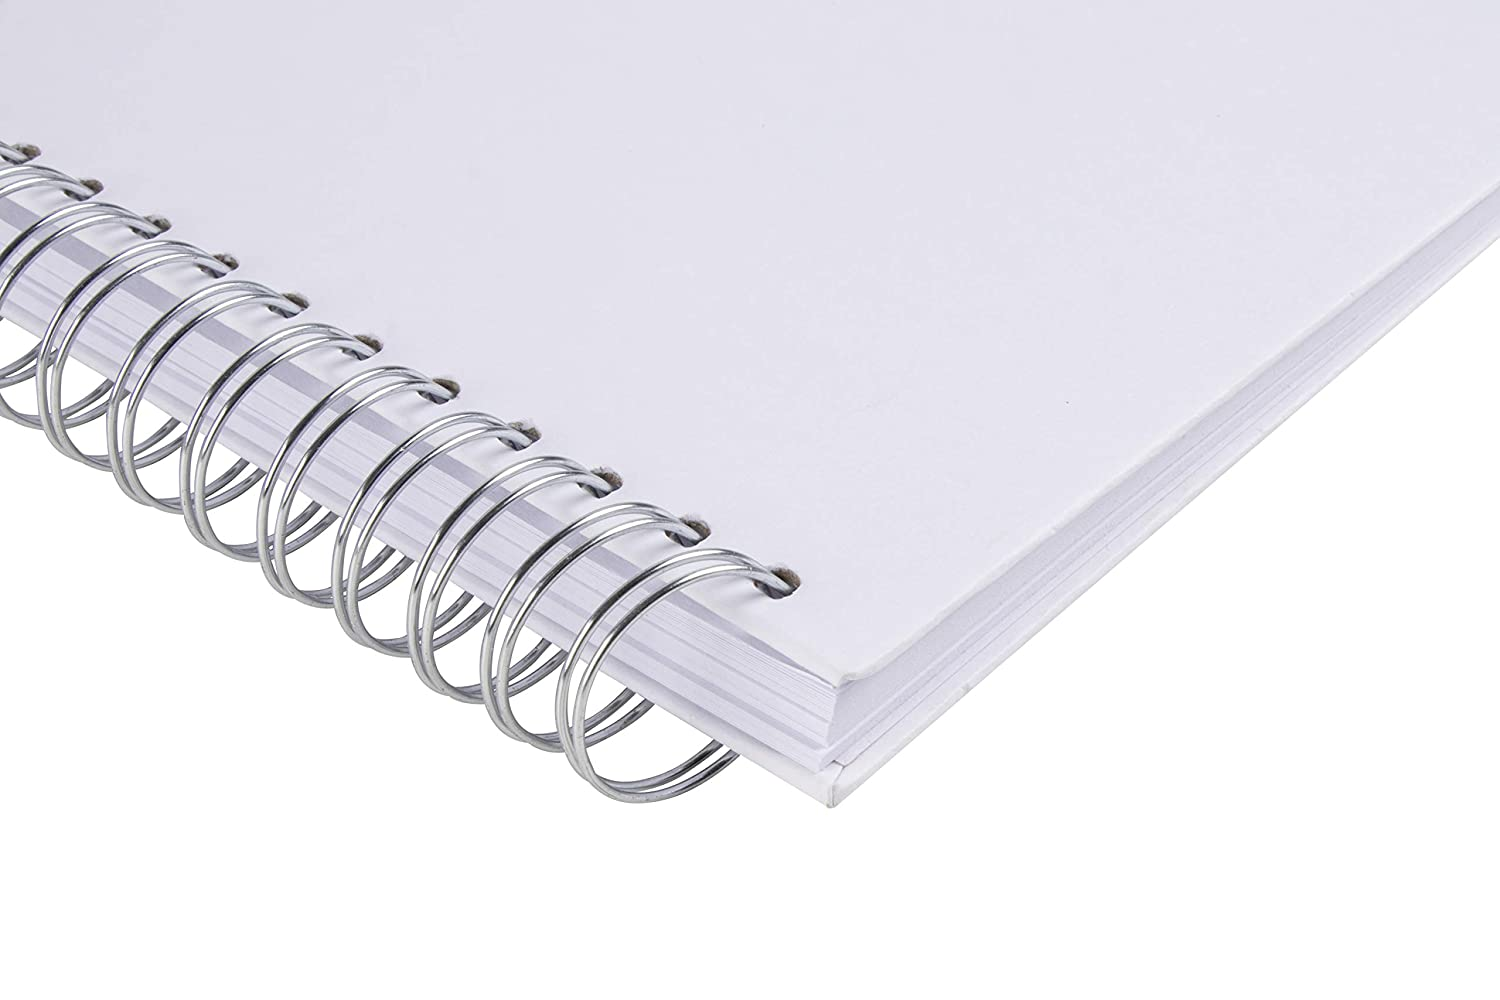 Blank Wedding Guest Book Diary Journal Hardcover Scrapbook 40 Sheets Photo Album Square Spiral Bound Cardboard Cover Sketchbook for Kids DIY Craft White 8 x 8 Inches